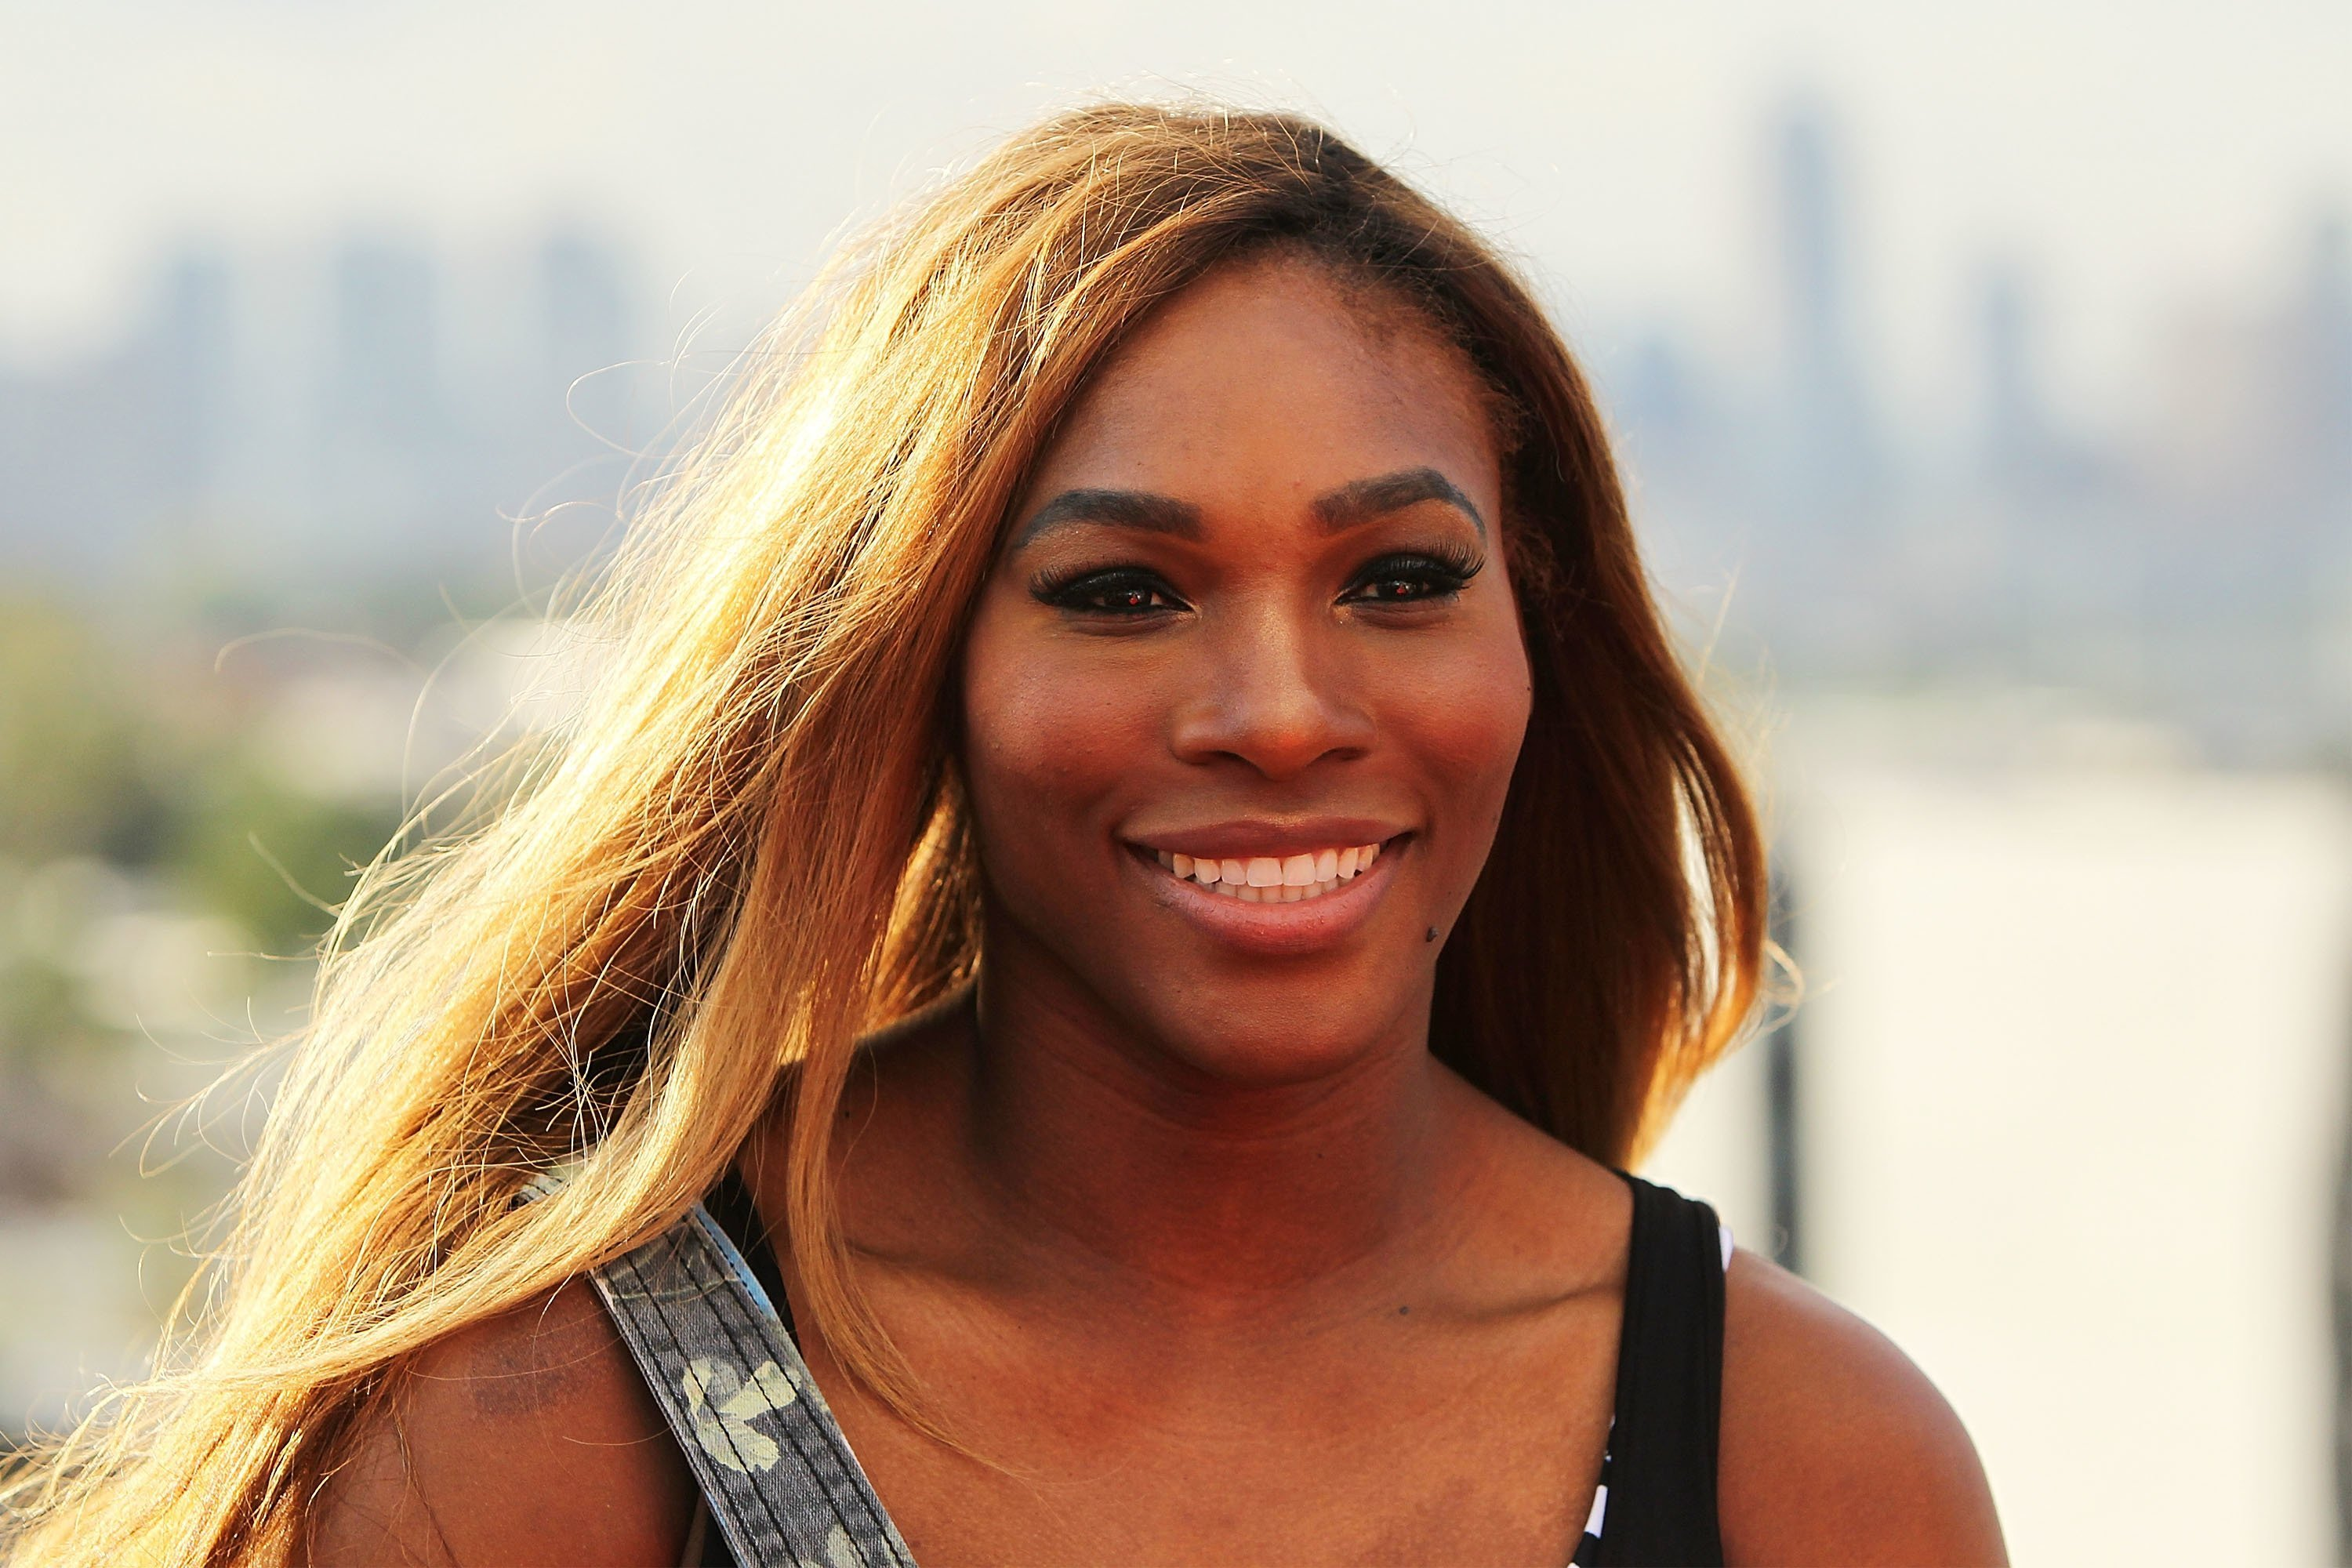 Serena Williams of the USA looks on during a meet & greet with the Melbourne Renegades at The Olsen on January 9, 2014 in Melbourne, Australia | Photo: Getty Images